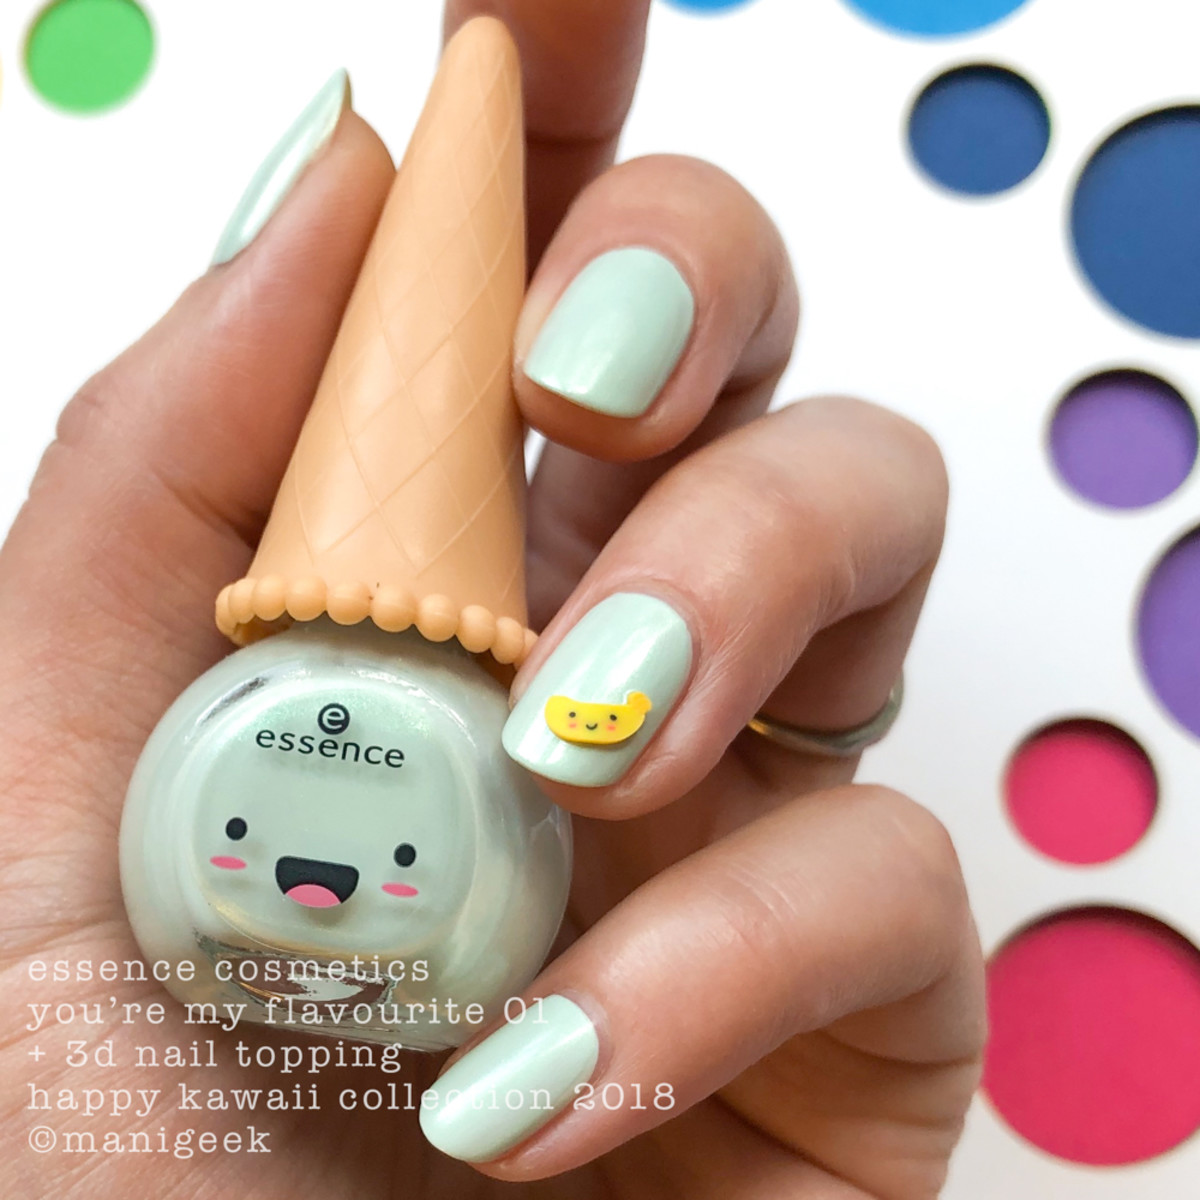 Essence Cosmetics You're My Flavourite 01 - Essence Happy Kawaii Collection